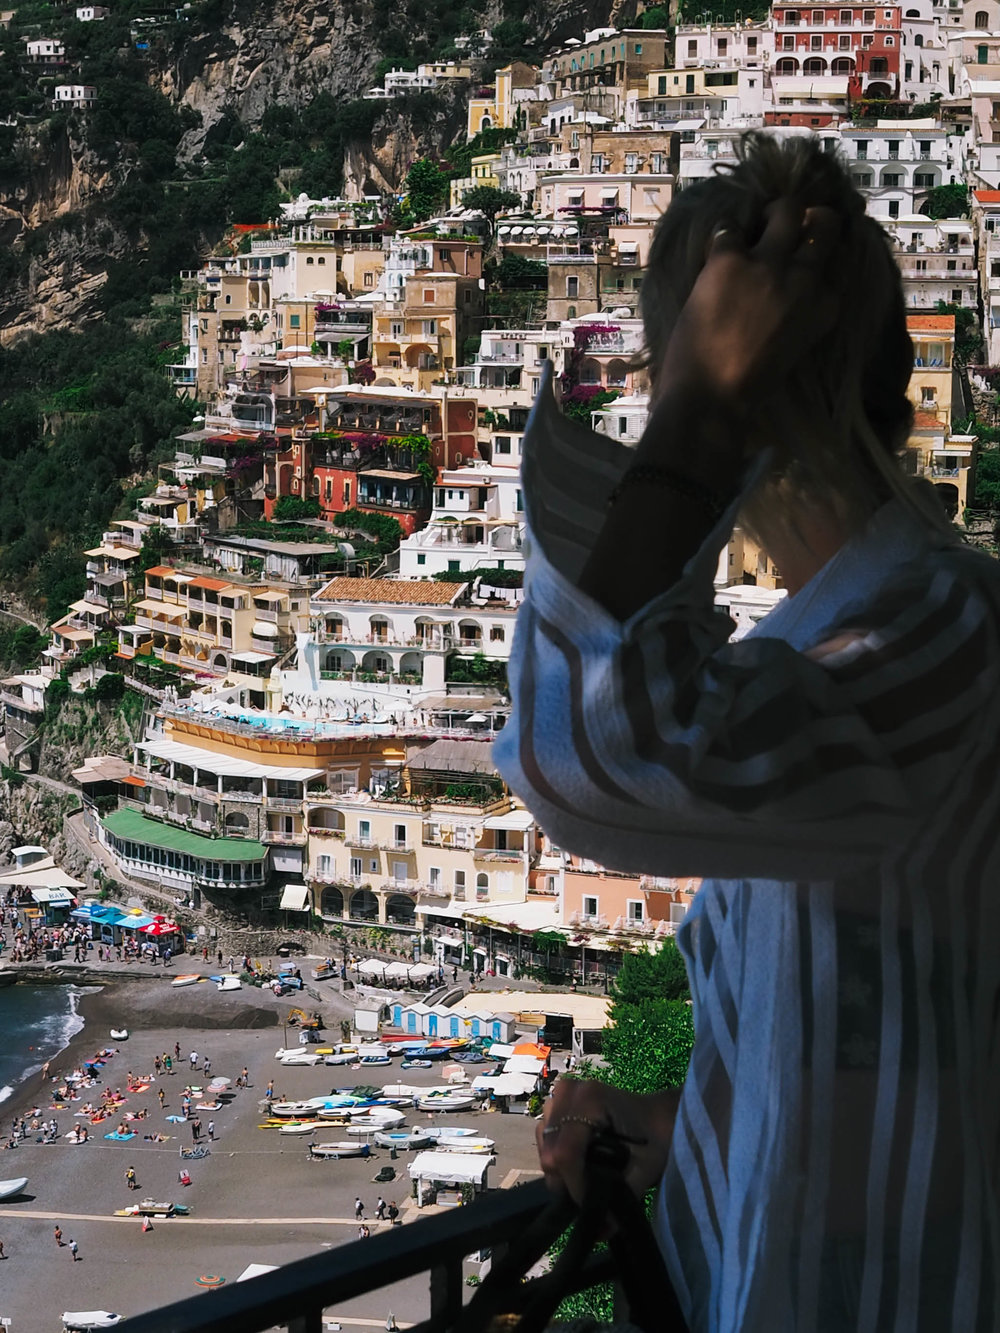 Positano-30mm-7.jpg-blog-post-eg.jpg